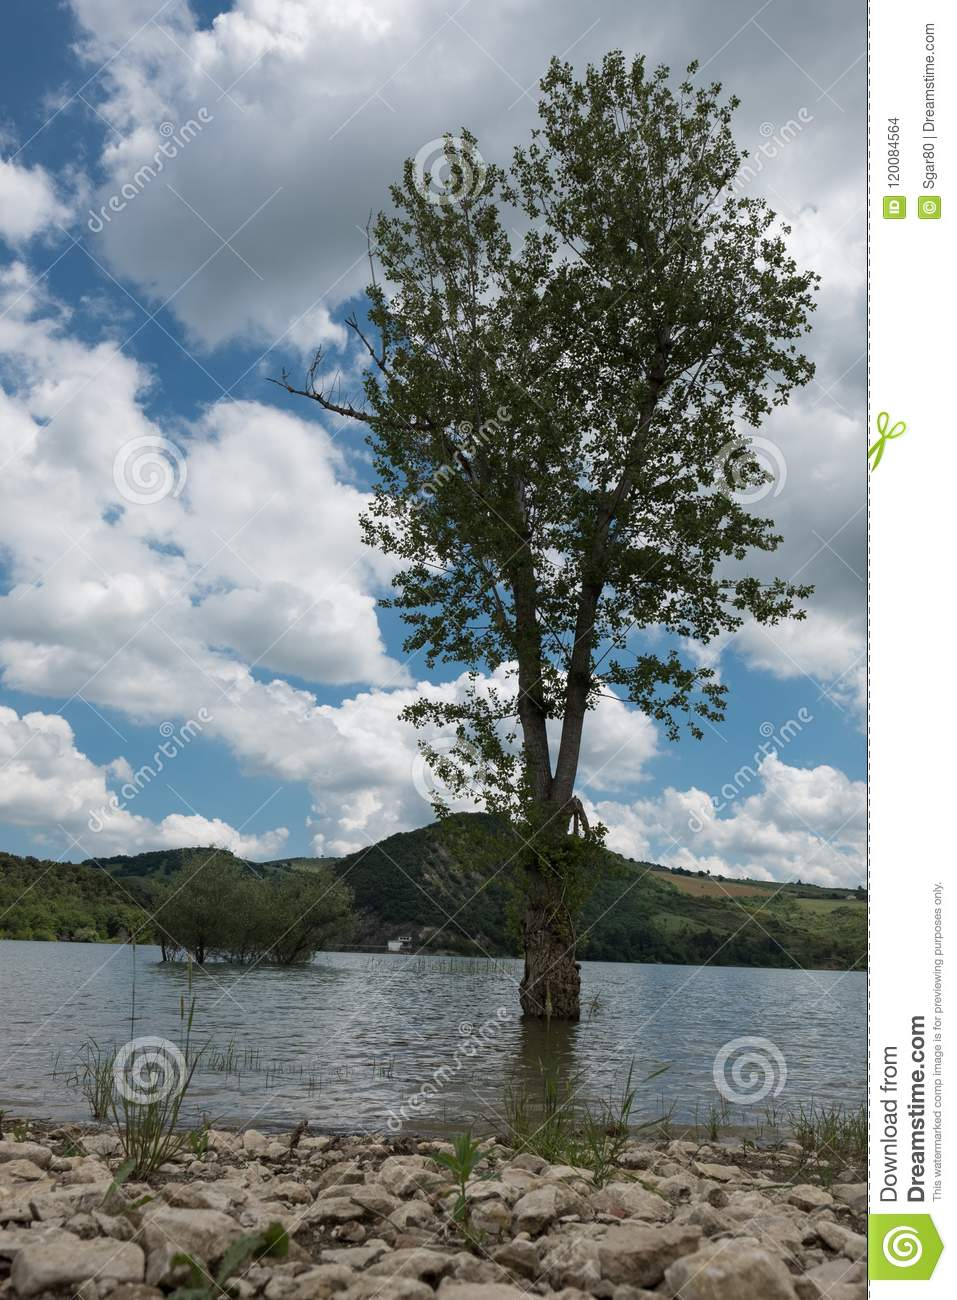 Lago Di Casoli Ch Abruzzo Italy Stock Photo - Image of italy, blue ...